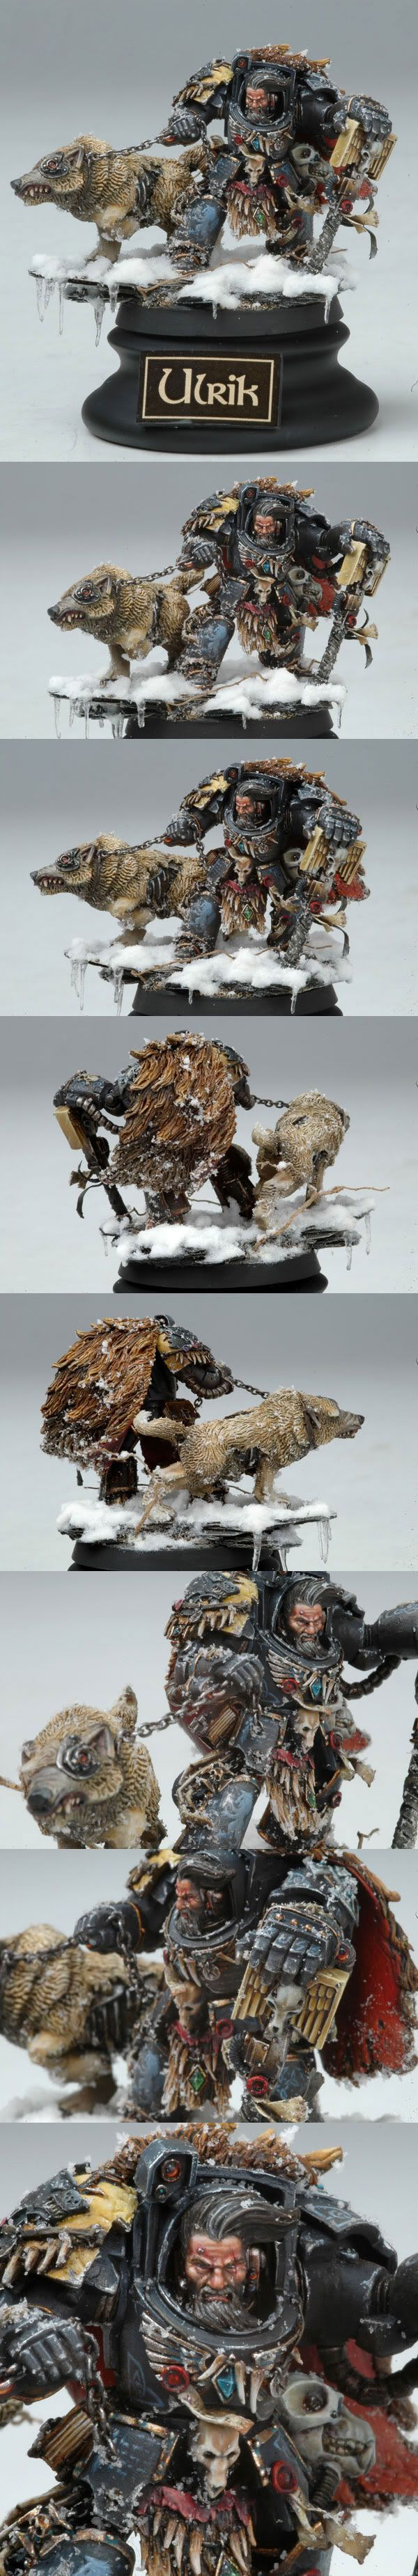 Warhammer 40k Space Wolves, AWESOME custom Ulrik the Slayer in Terminator Armor. Great snow/ice effects